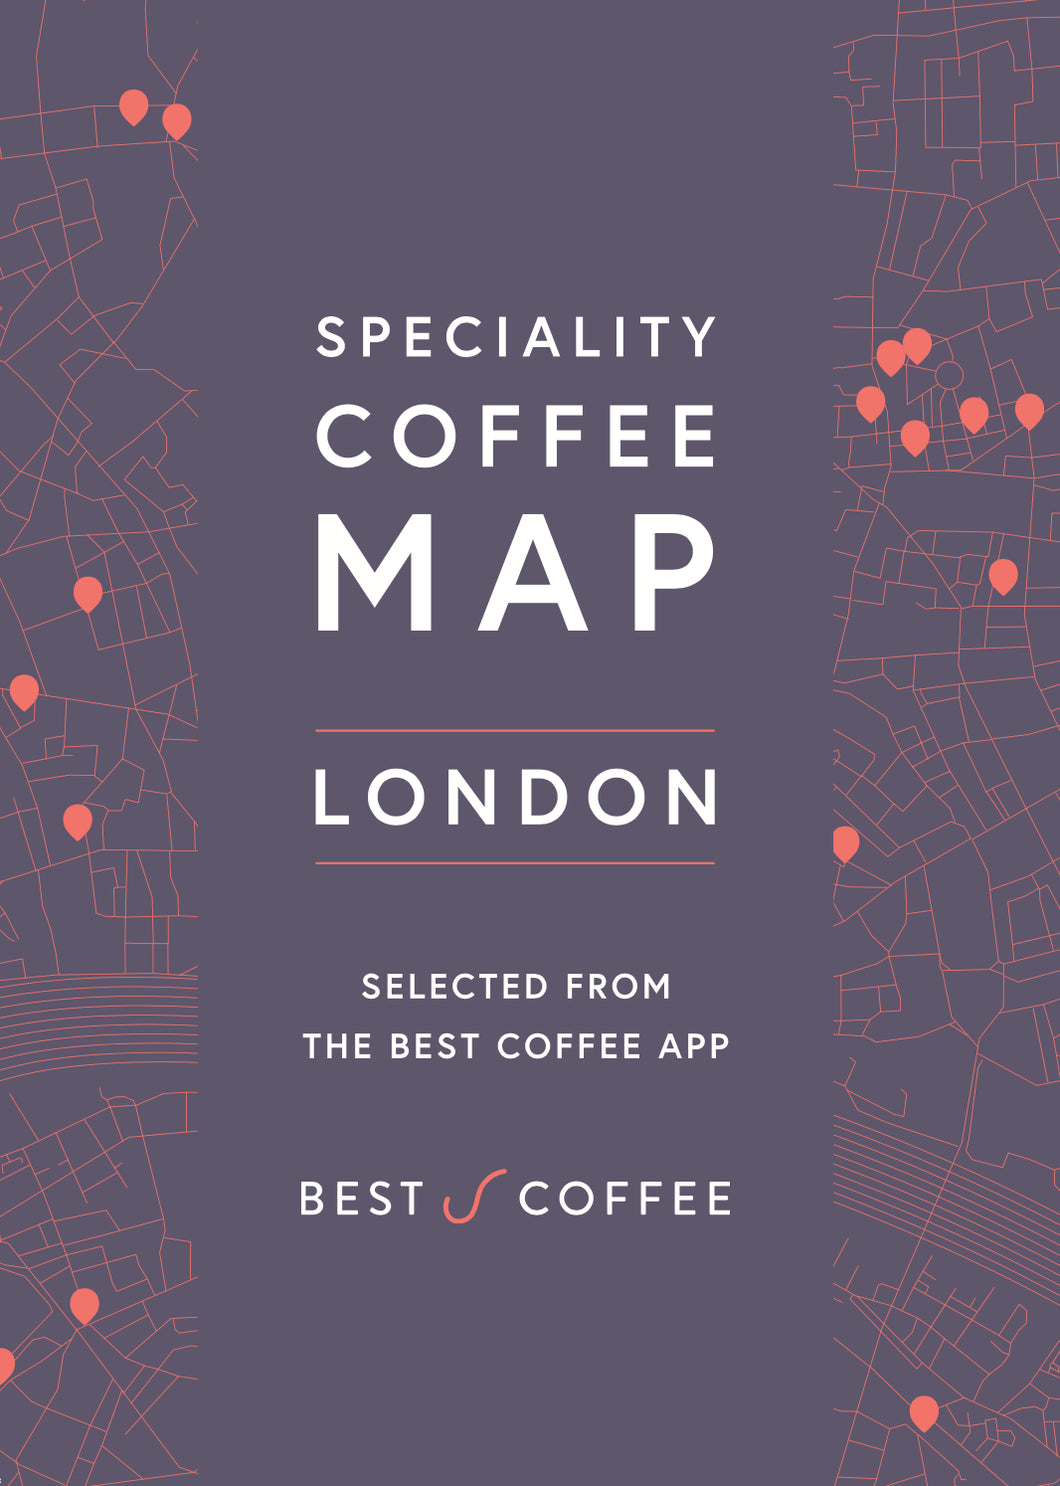 Speciality Coffee Map - London